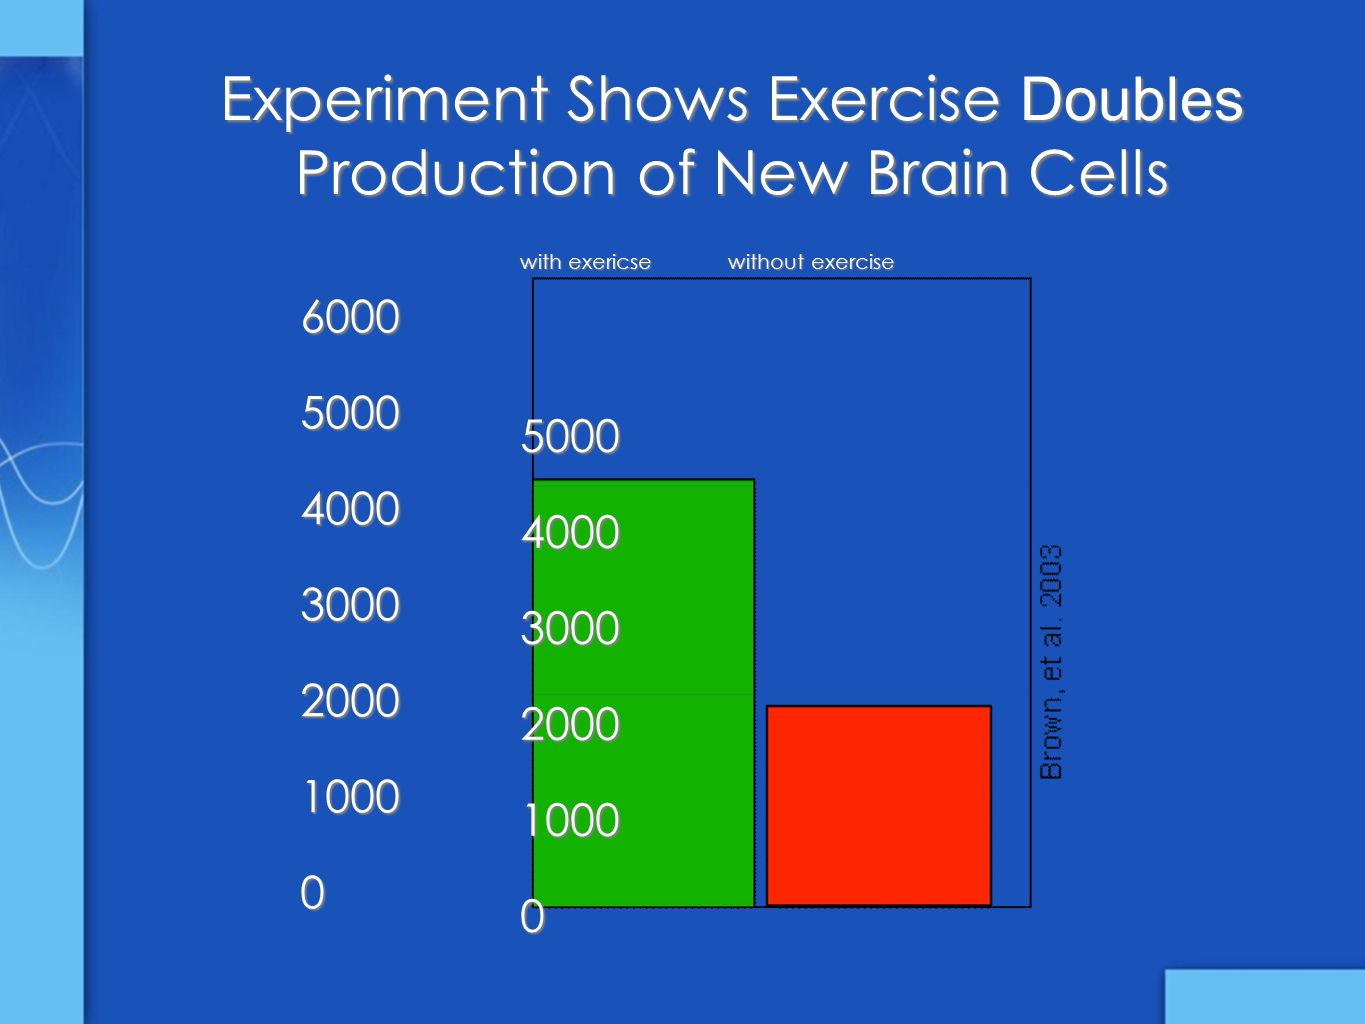 6000500040003000200010000 with exericse without exercise 500040003000200010000 Experiment Shows Exercise Doubles Production of New Brain Cells